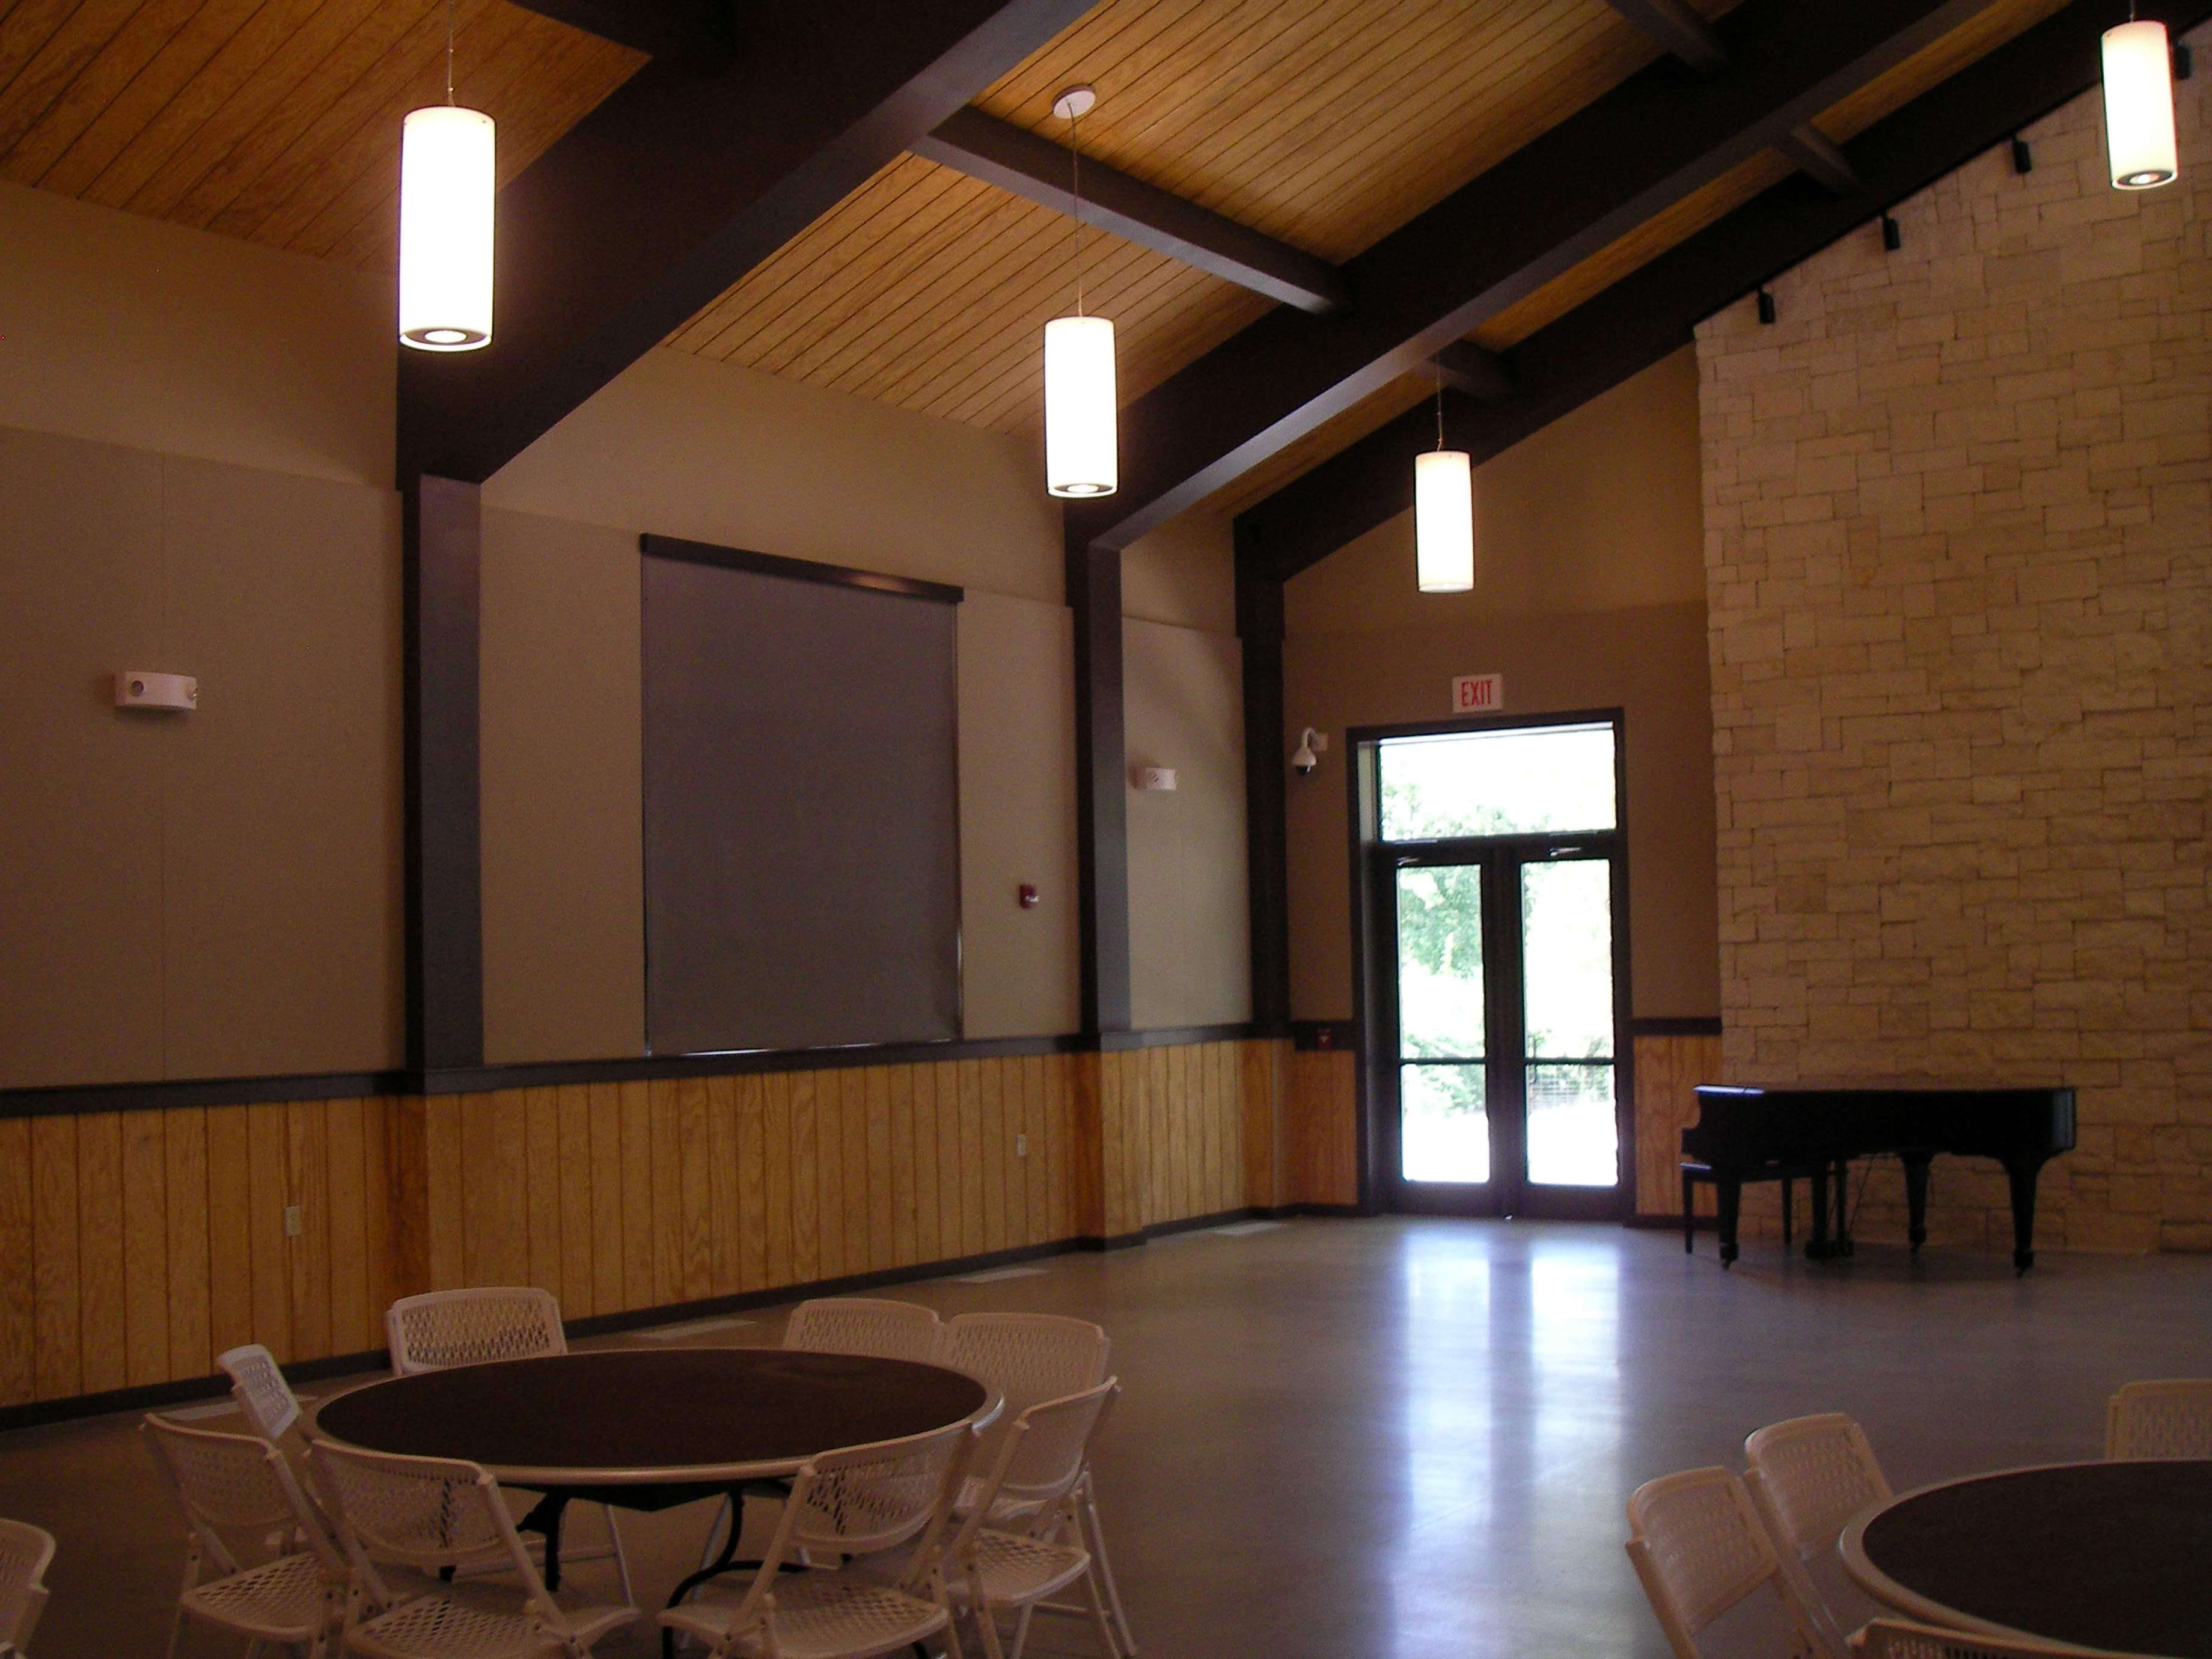 Botanica Acoustic Treatment in the Event Center